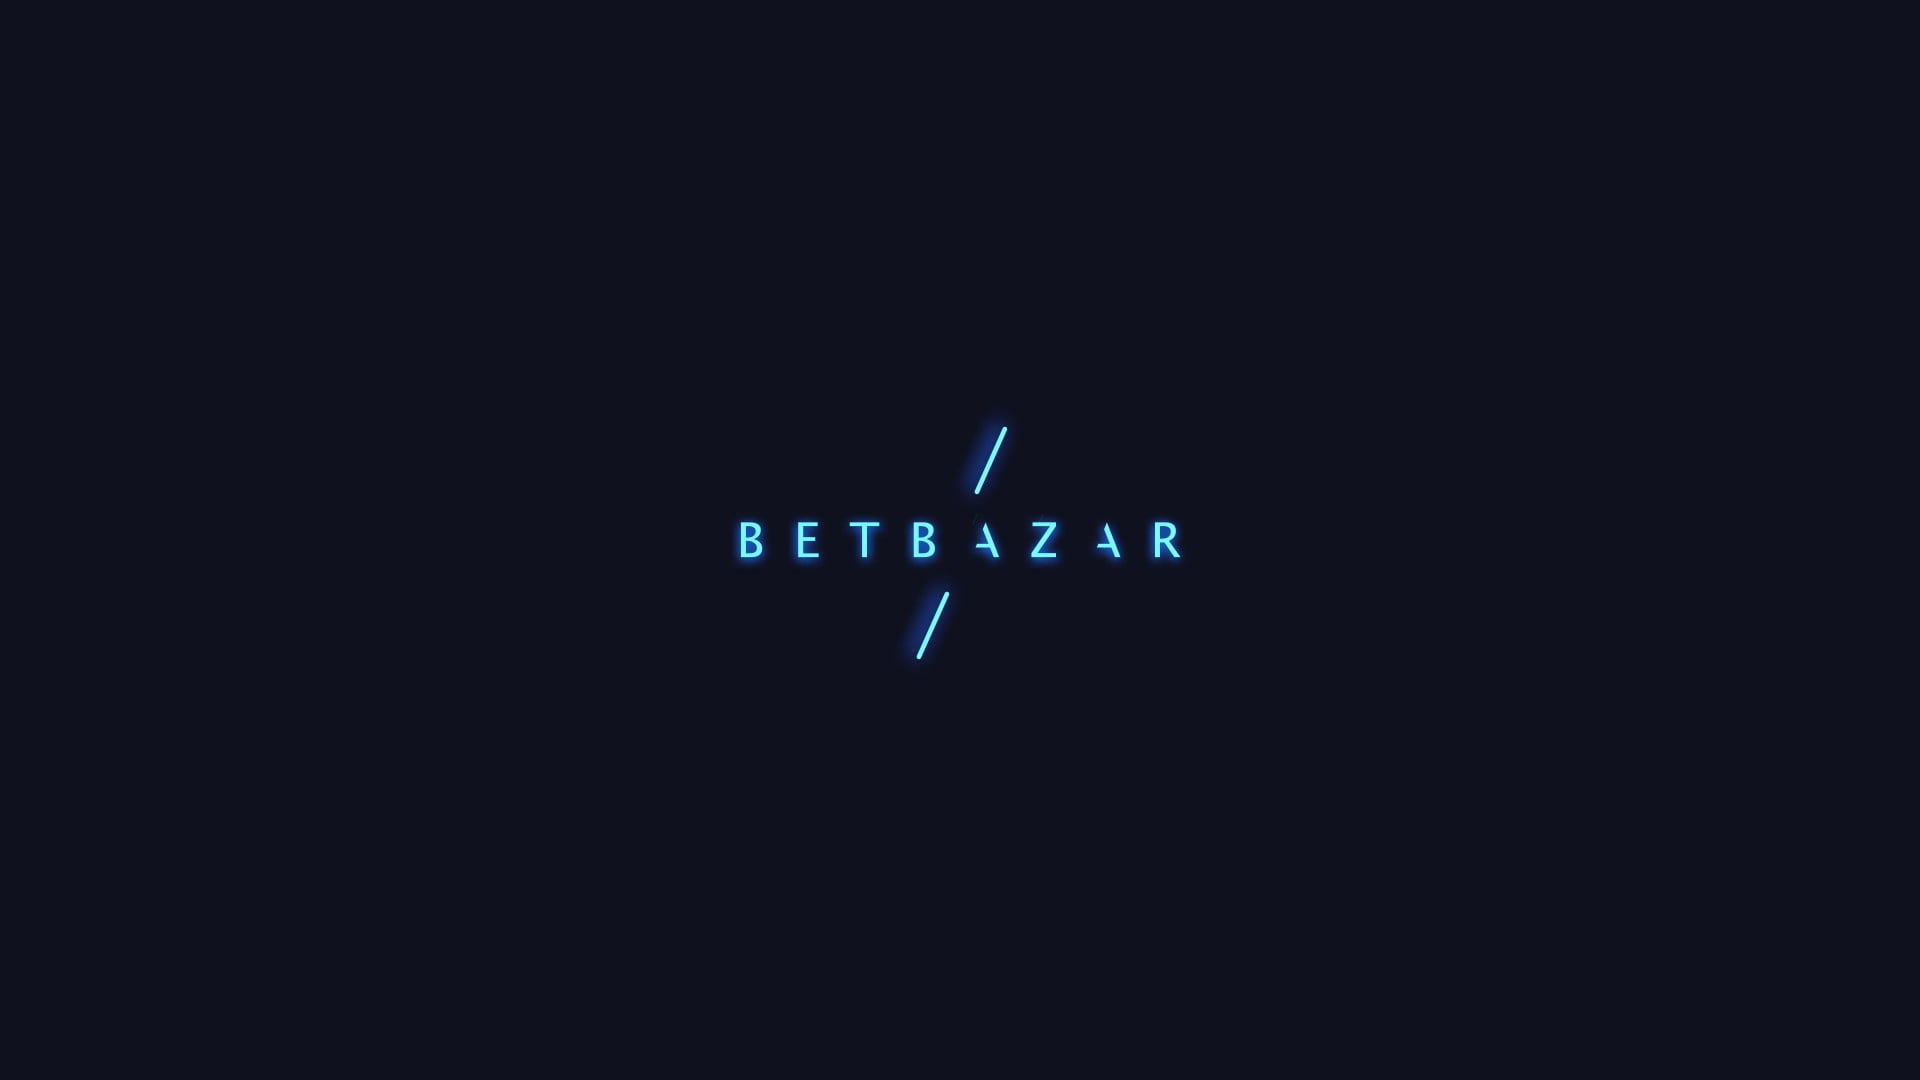 BetBazar Help Operators With Product Portfolios For Revenue Boost